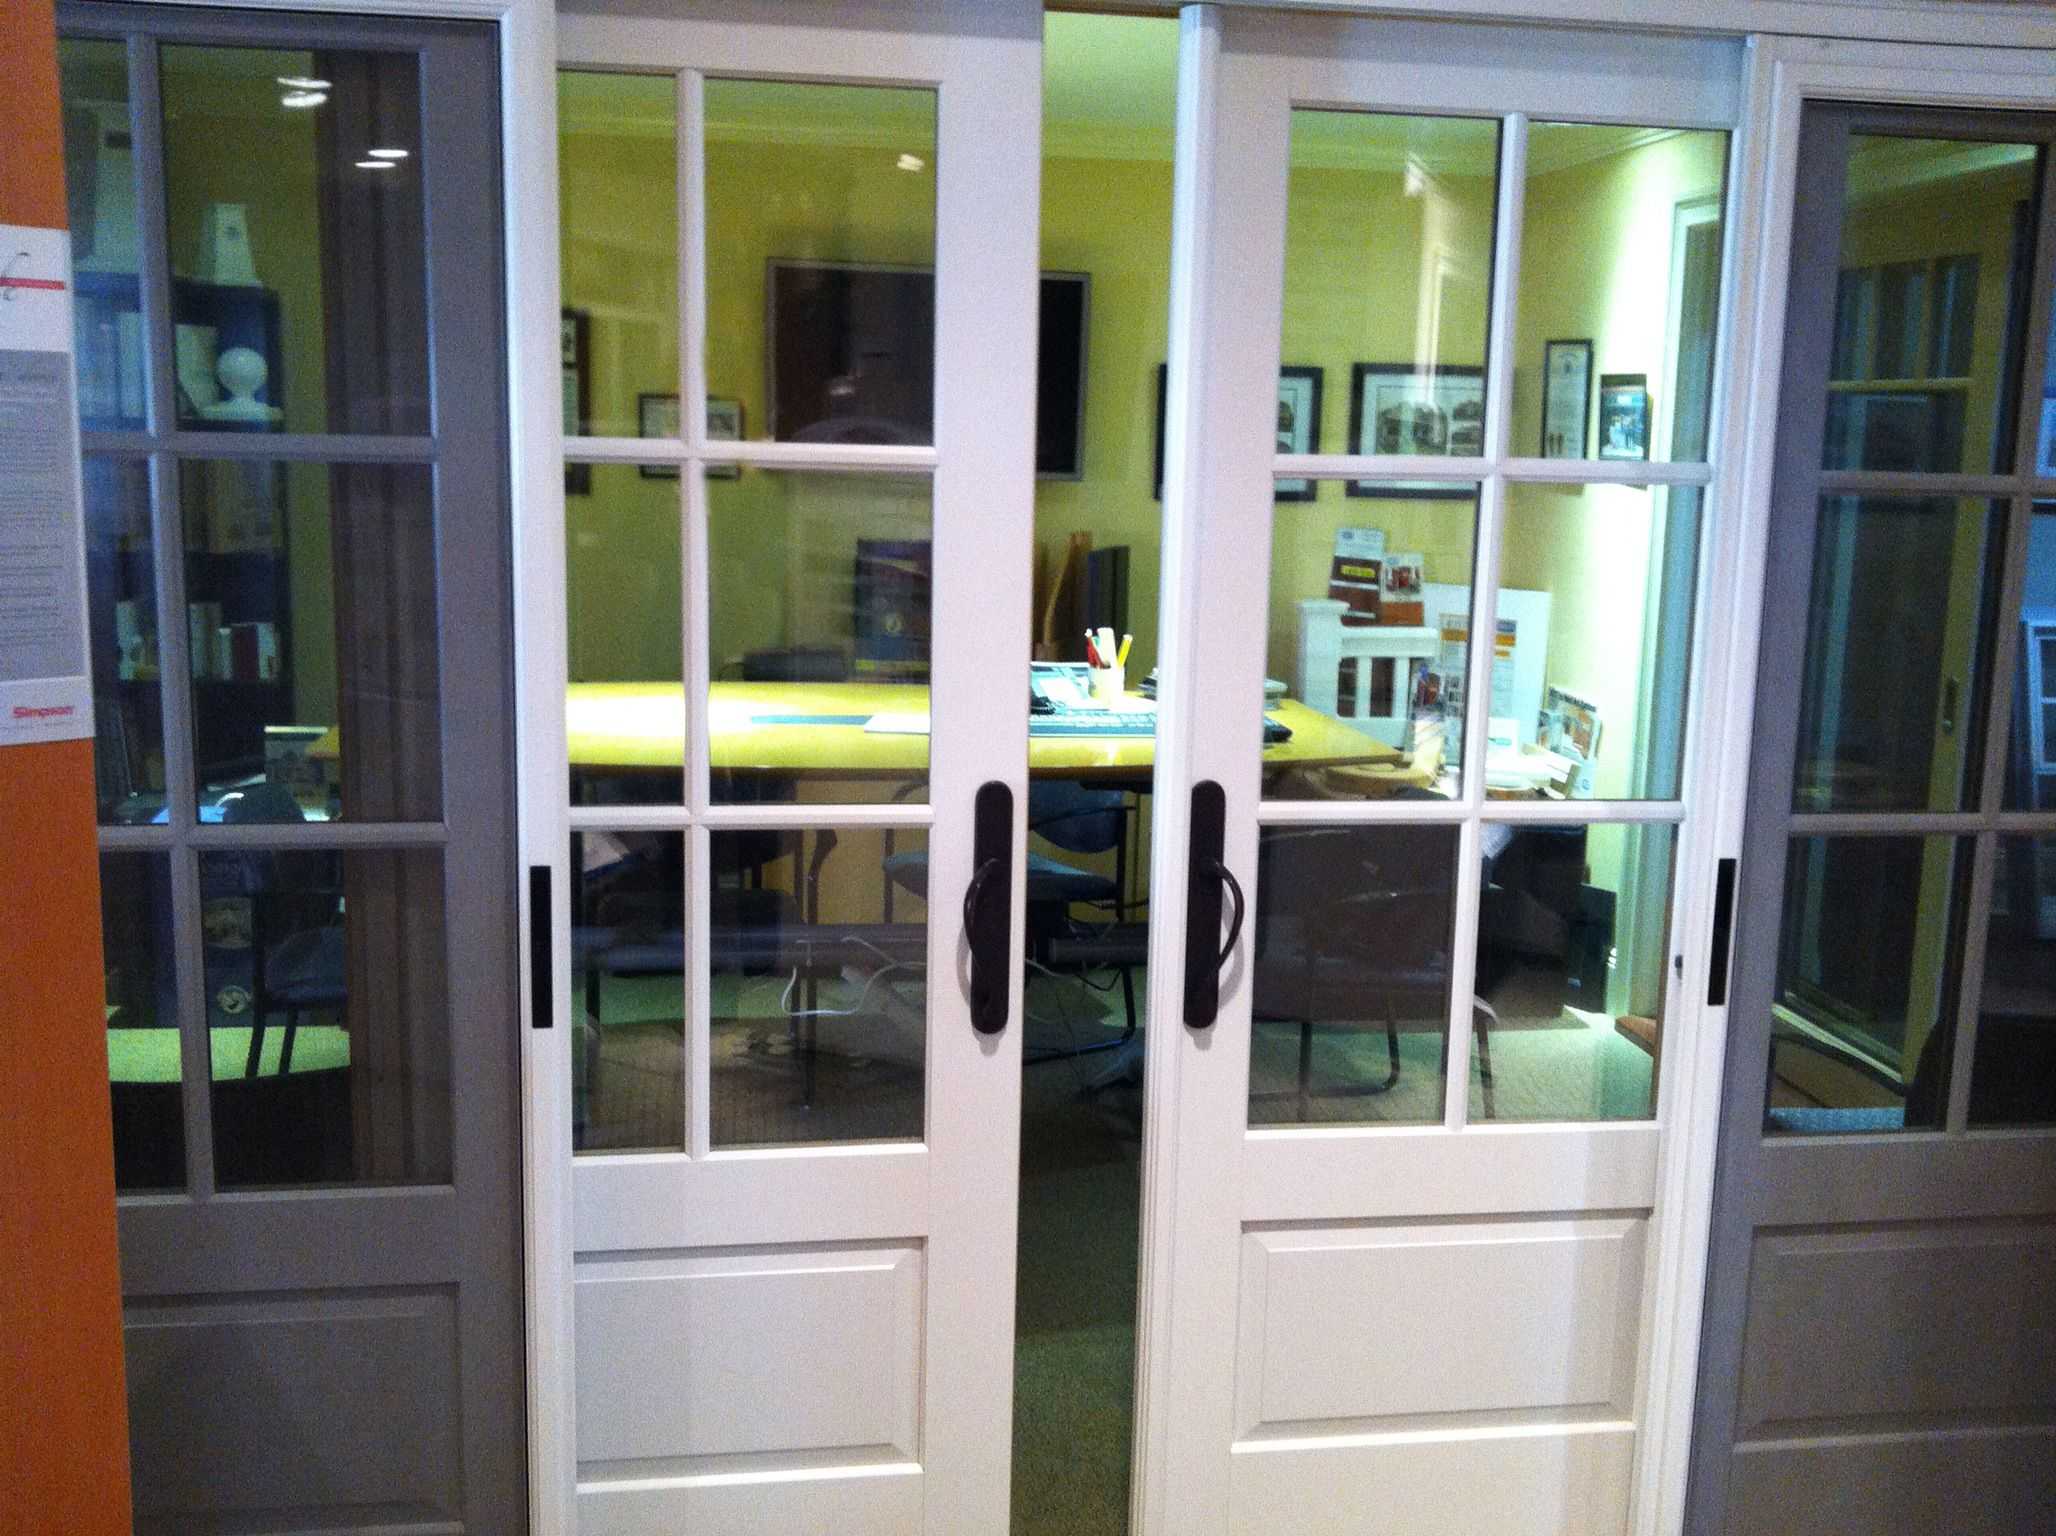 The Marvin Ultimate Bi-parting Sliding French Door in our showroom ...